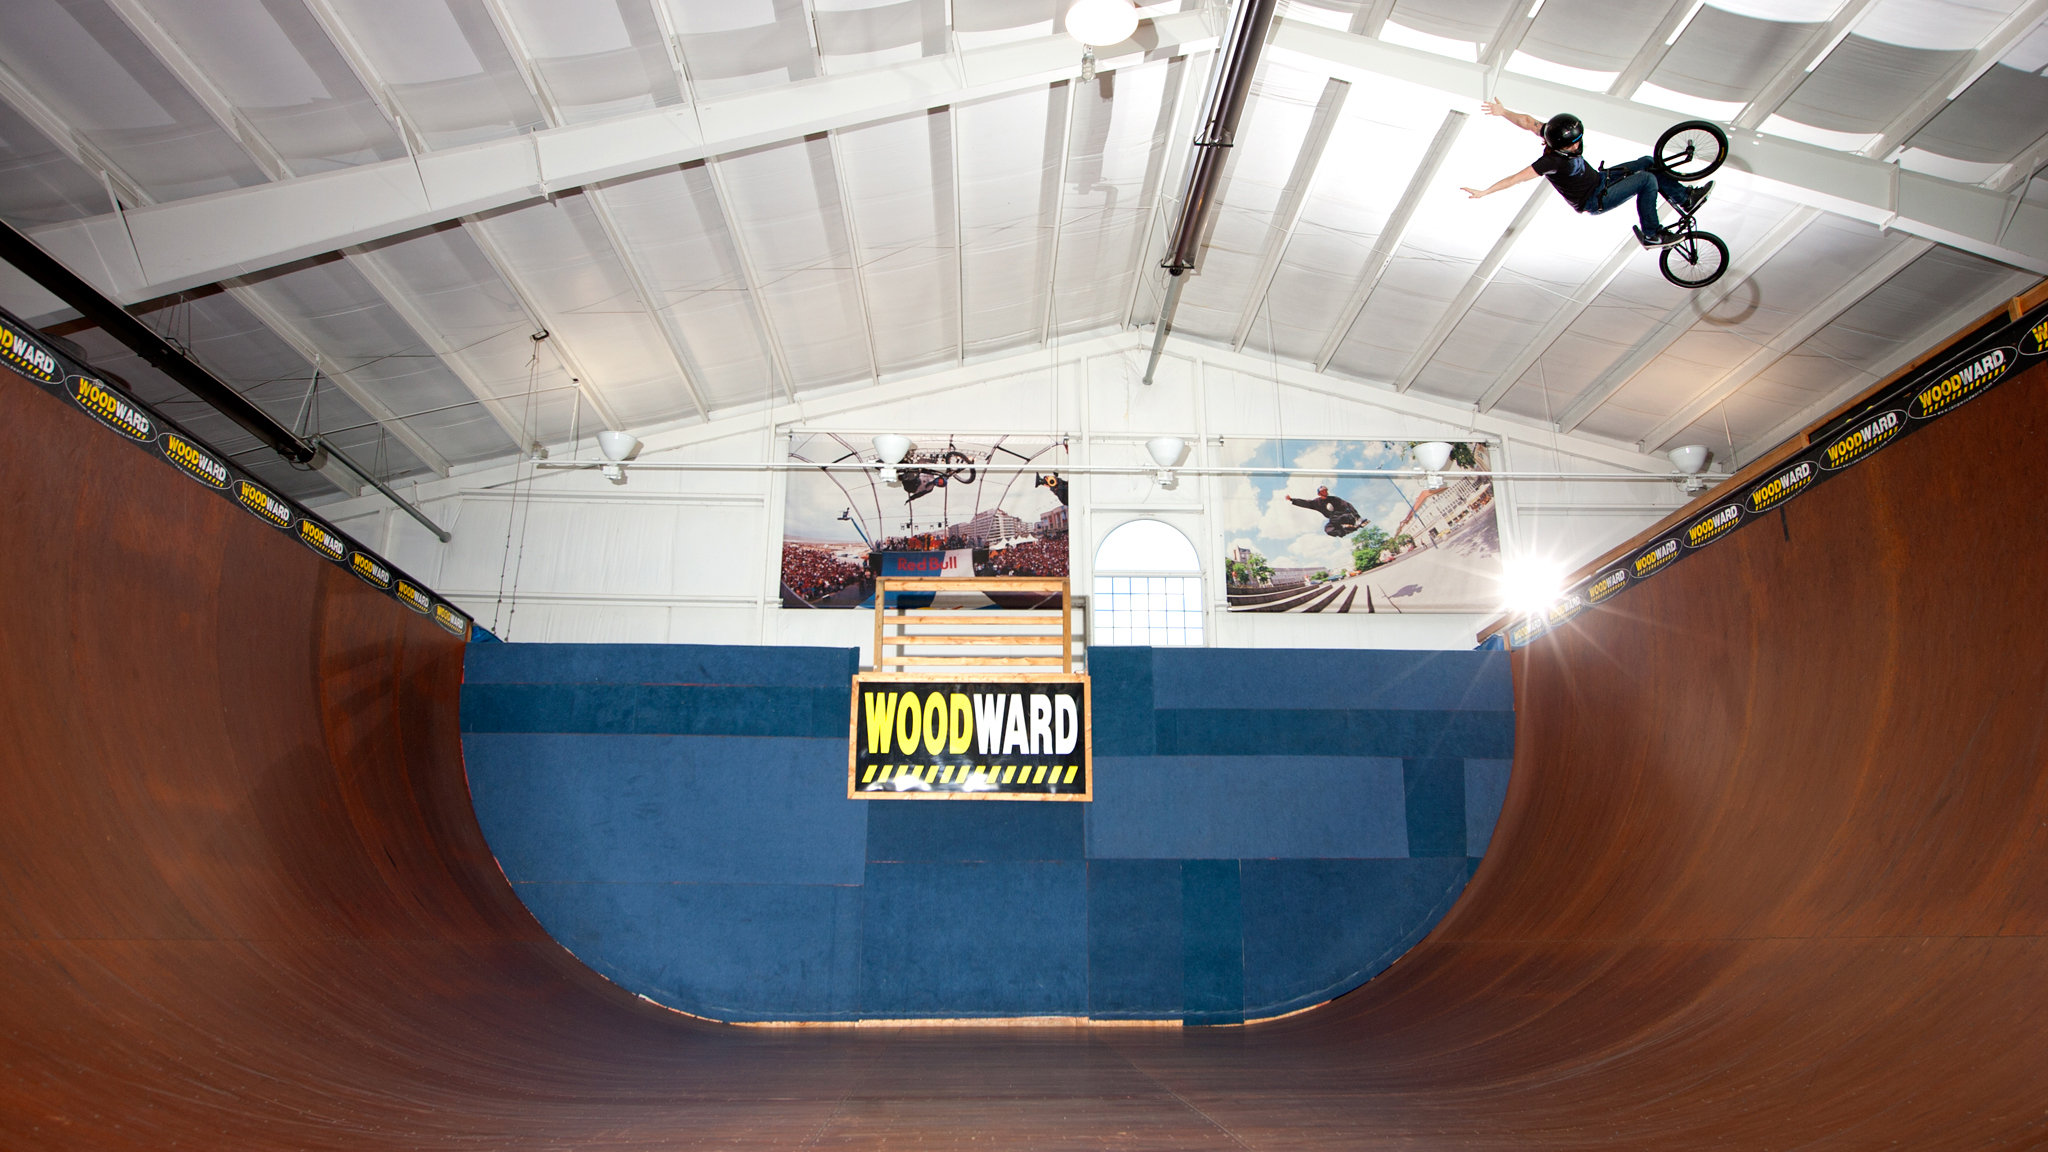 No-hander, Woodward Camp, 2012